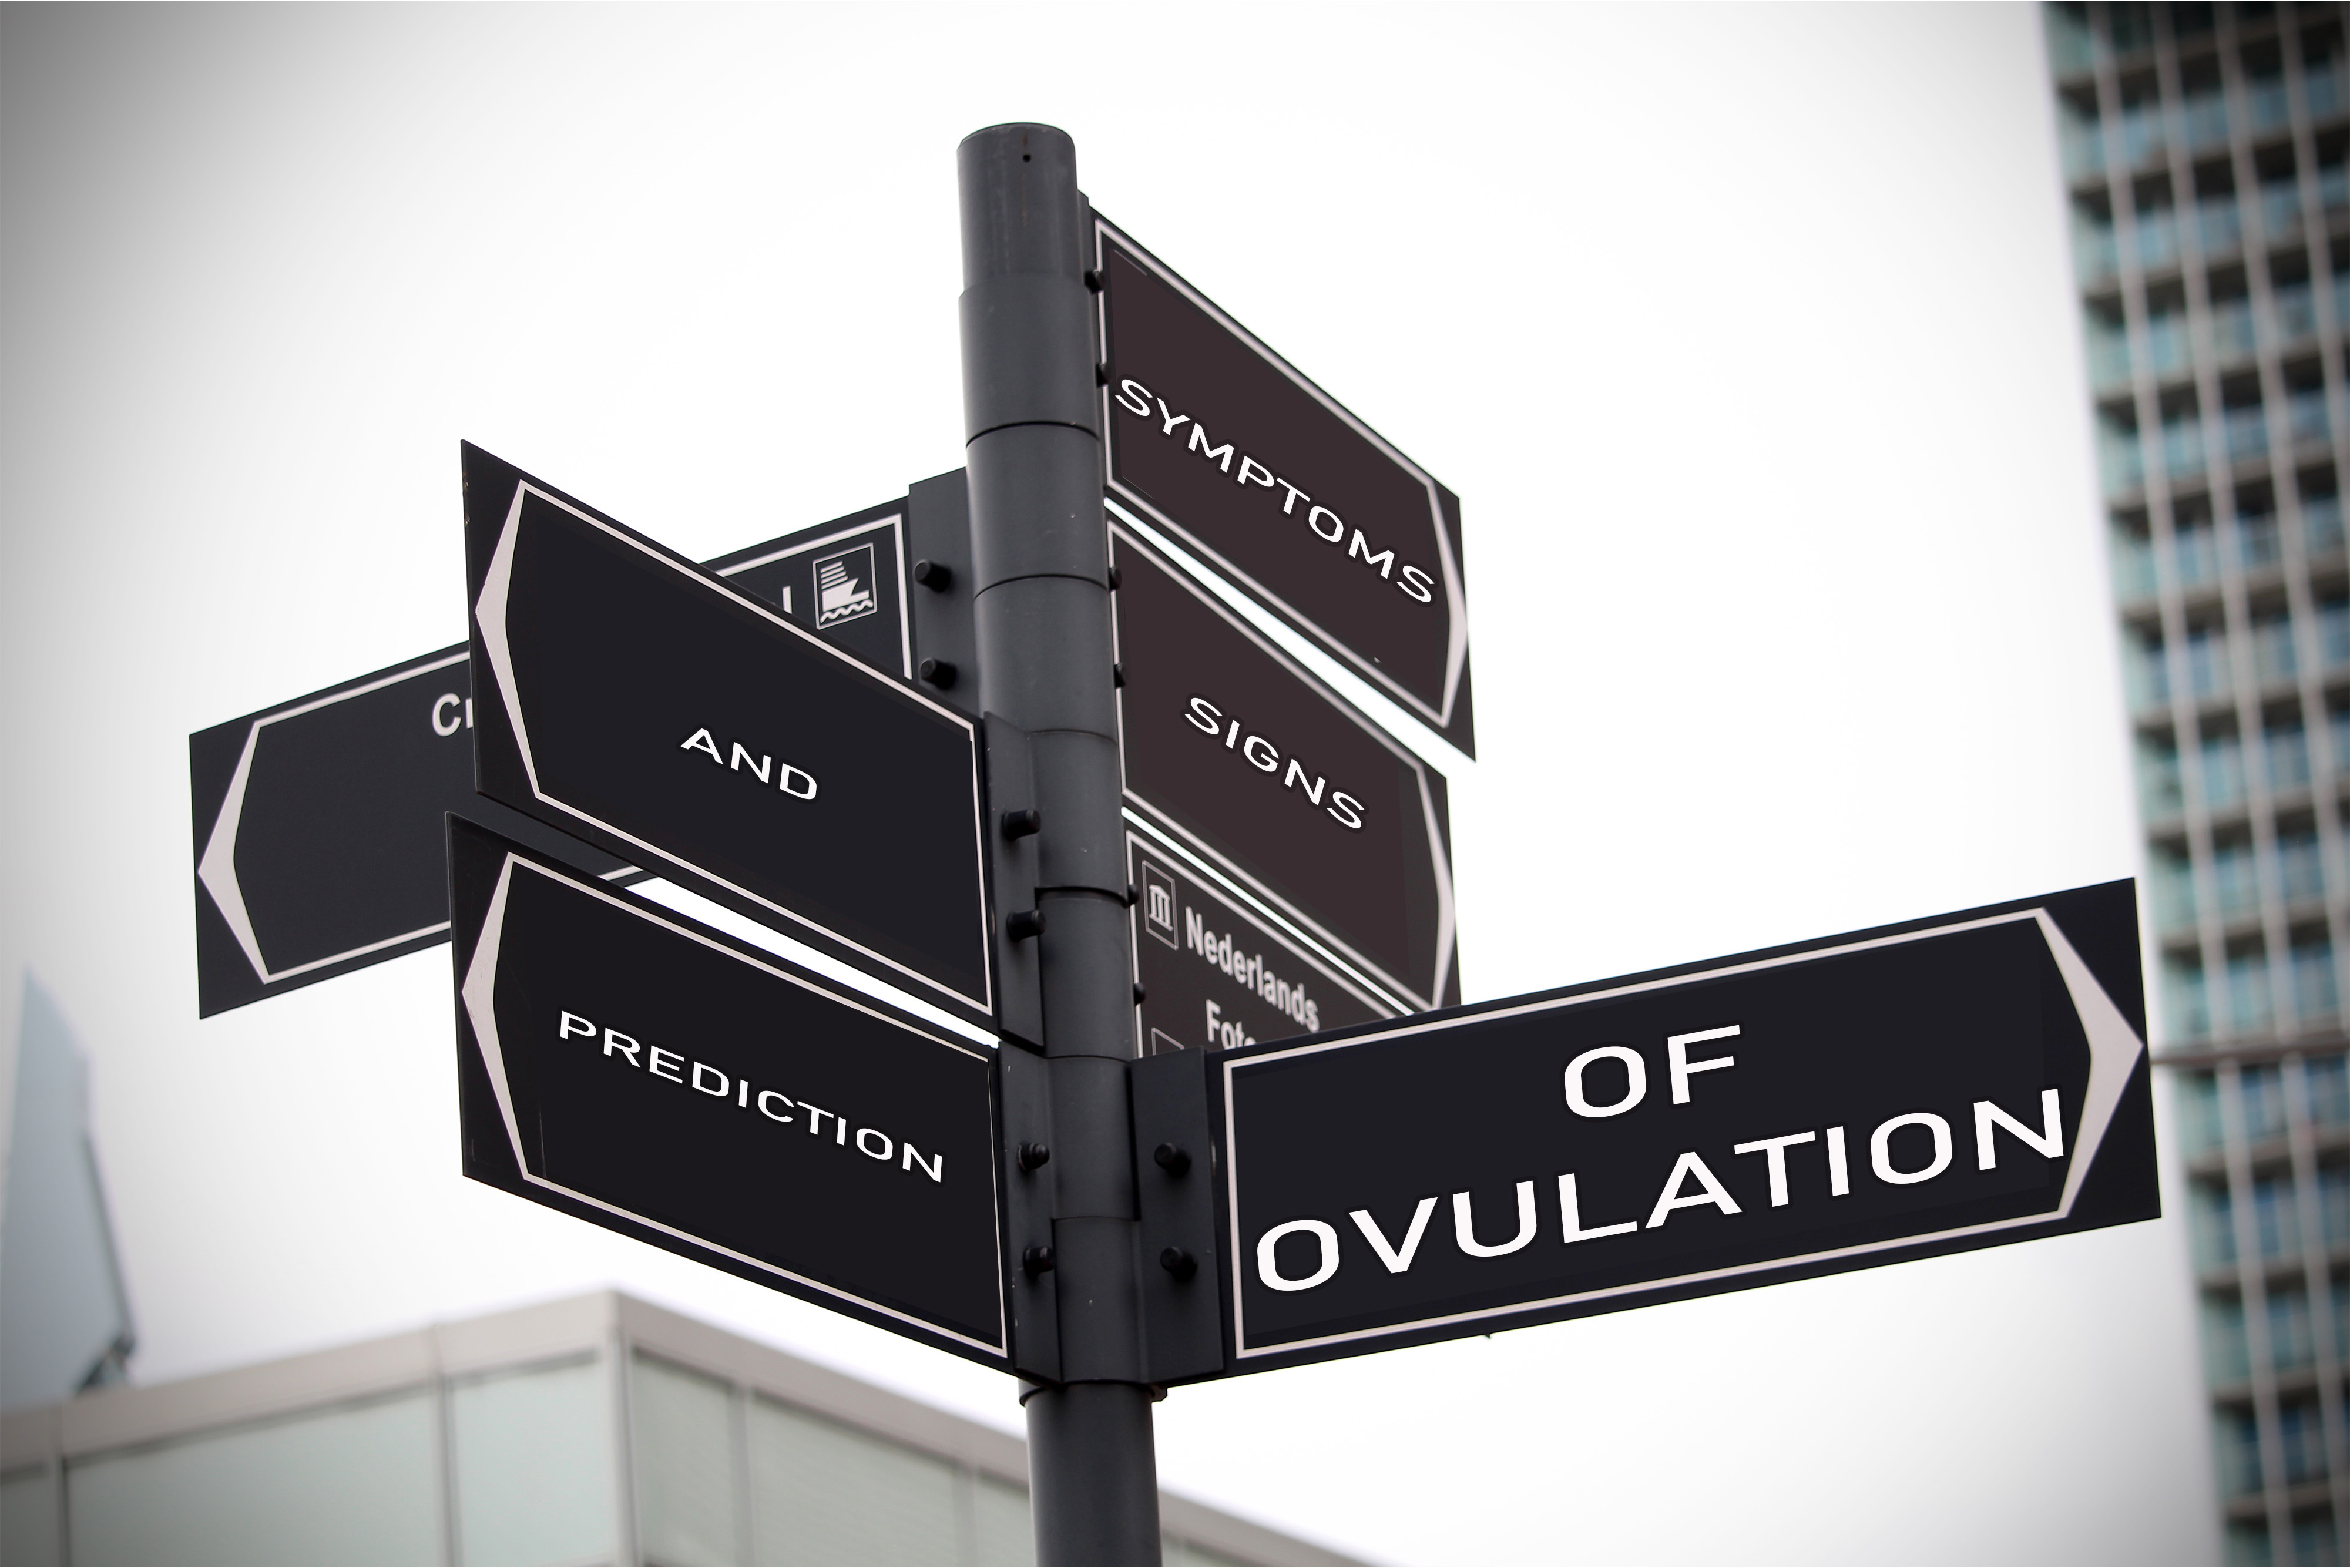 SYMPTOMS, SIGNS AND PREDICTION OF OVULATION